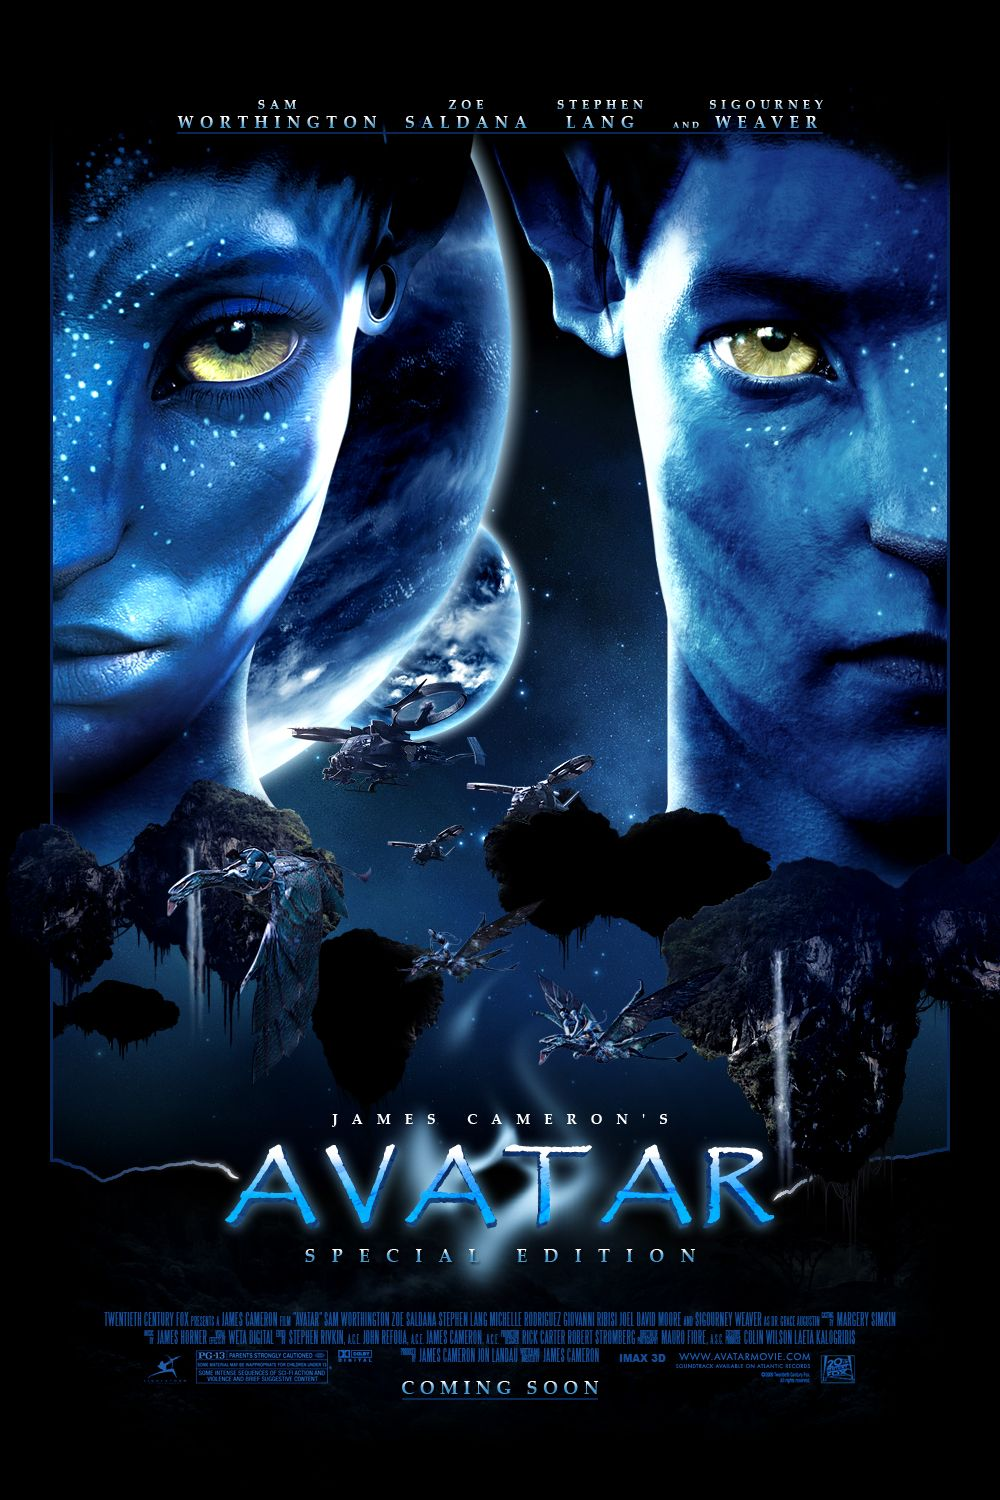 avatar special edition poster by jkks on deviantart